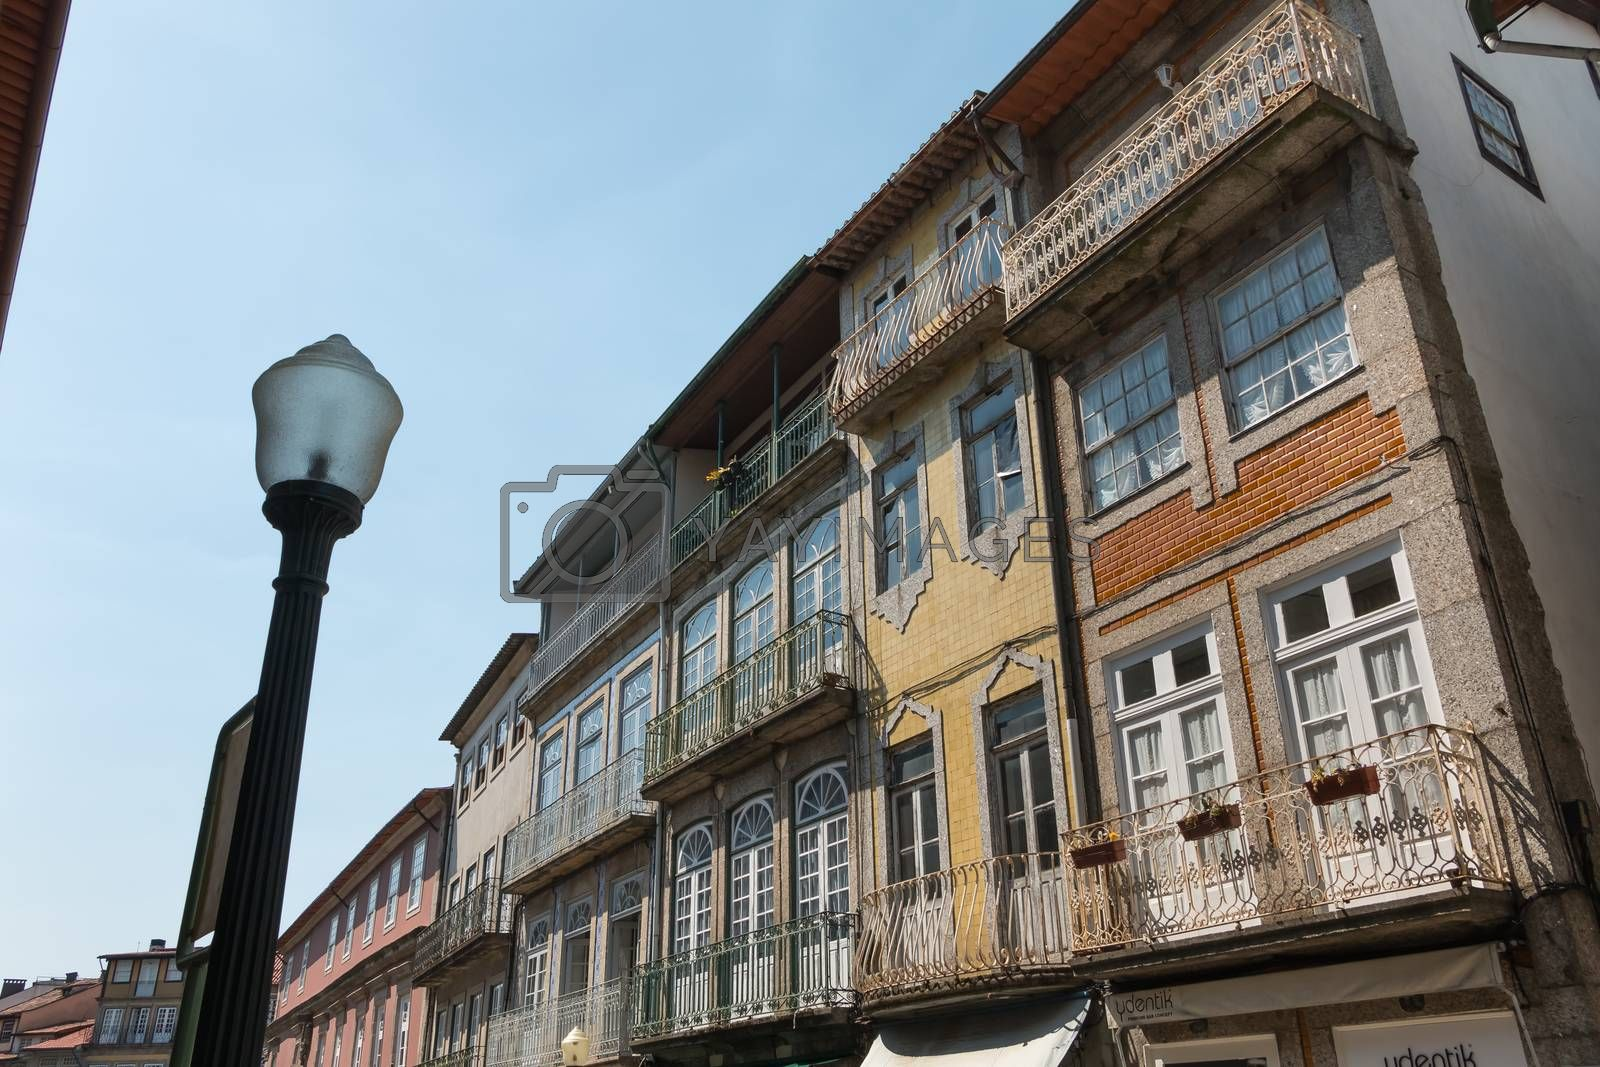 Guimaraes, Portugal - May 10, 2018: Architecture detail of houses typical of the small streets of the historic city center that tourists visit on a spring day